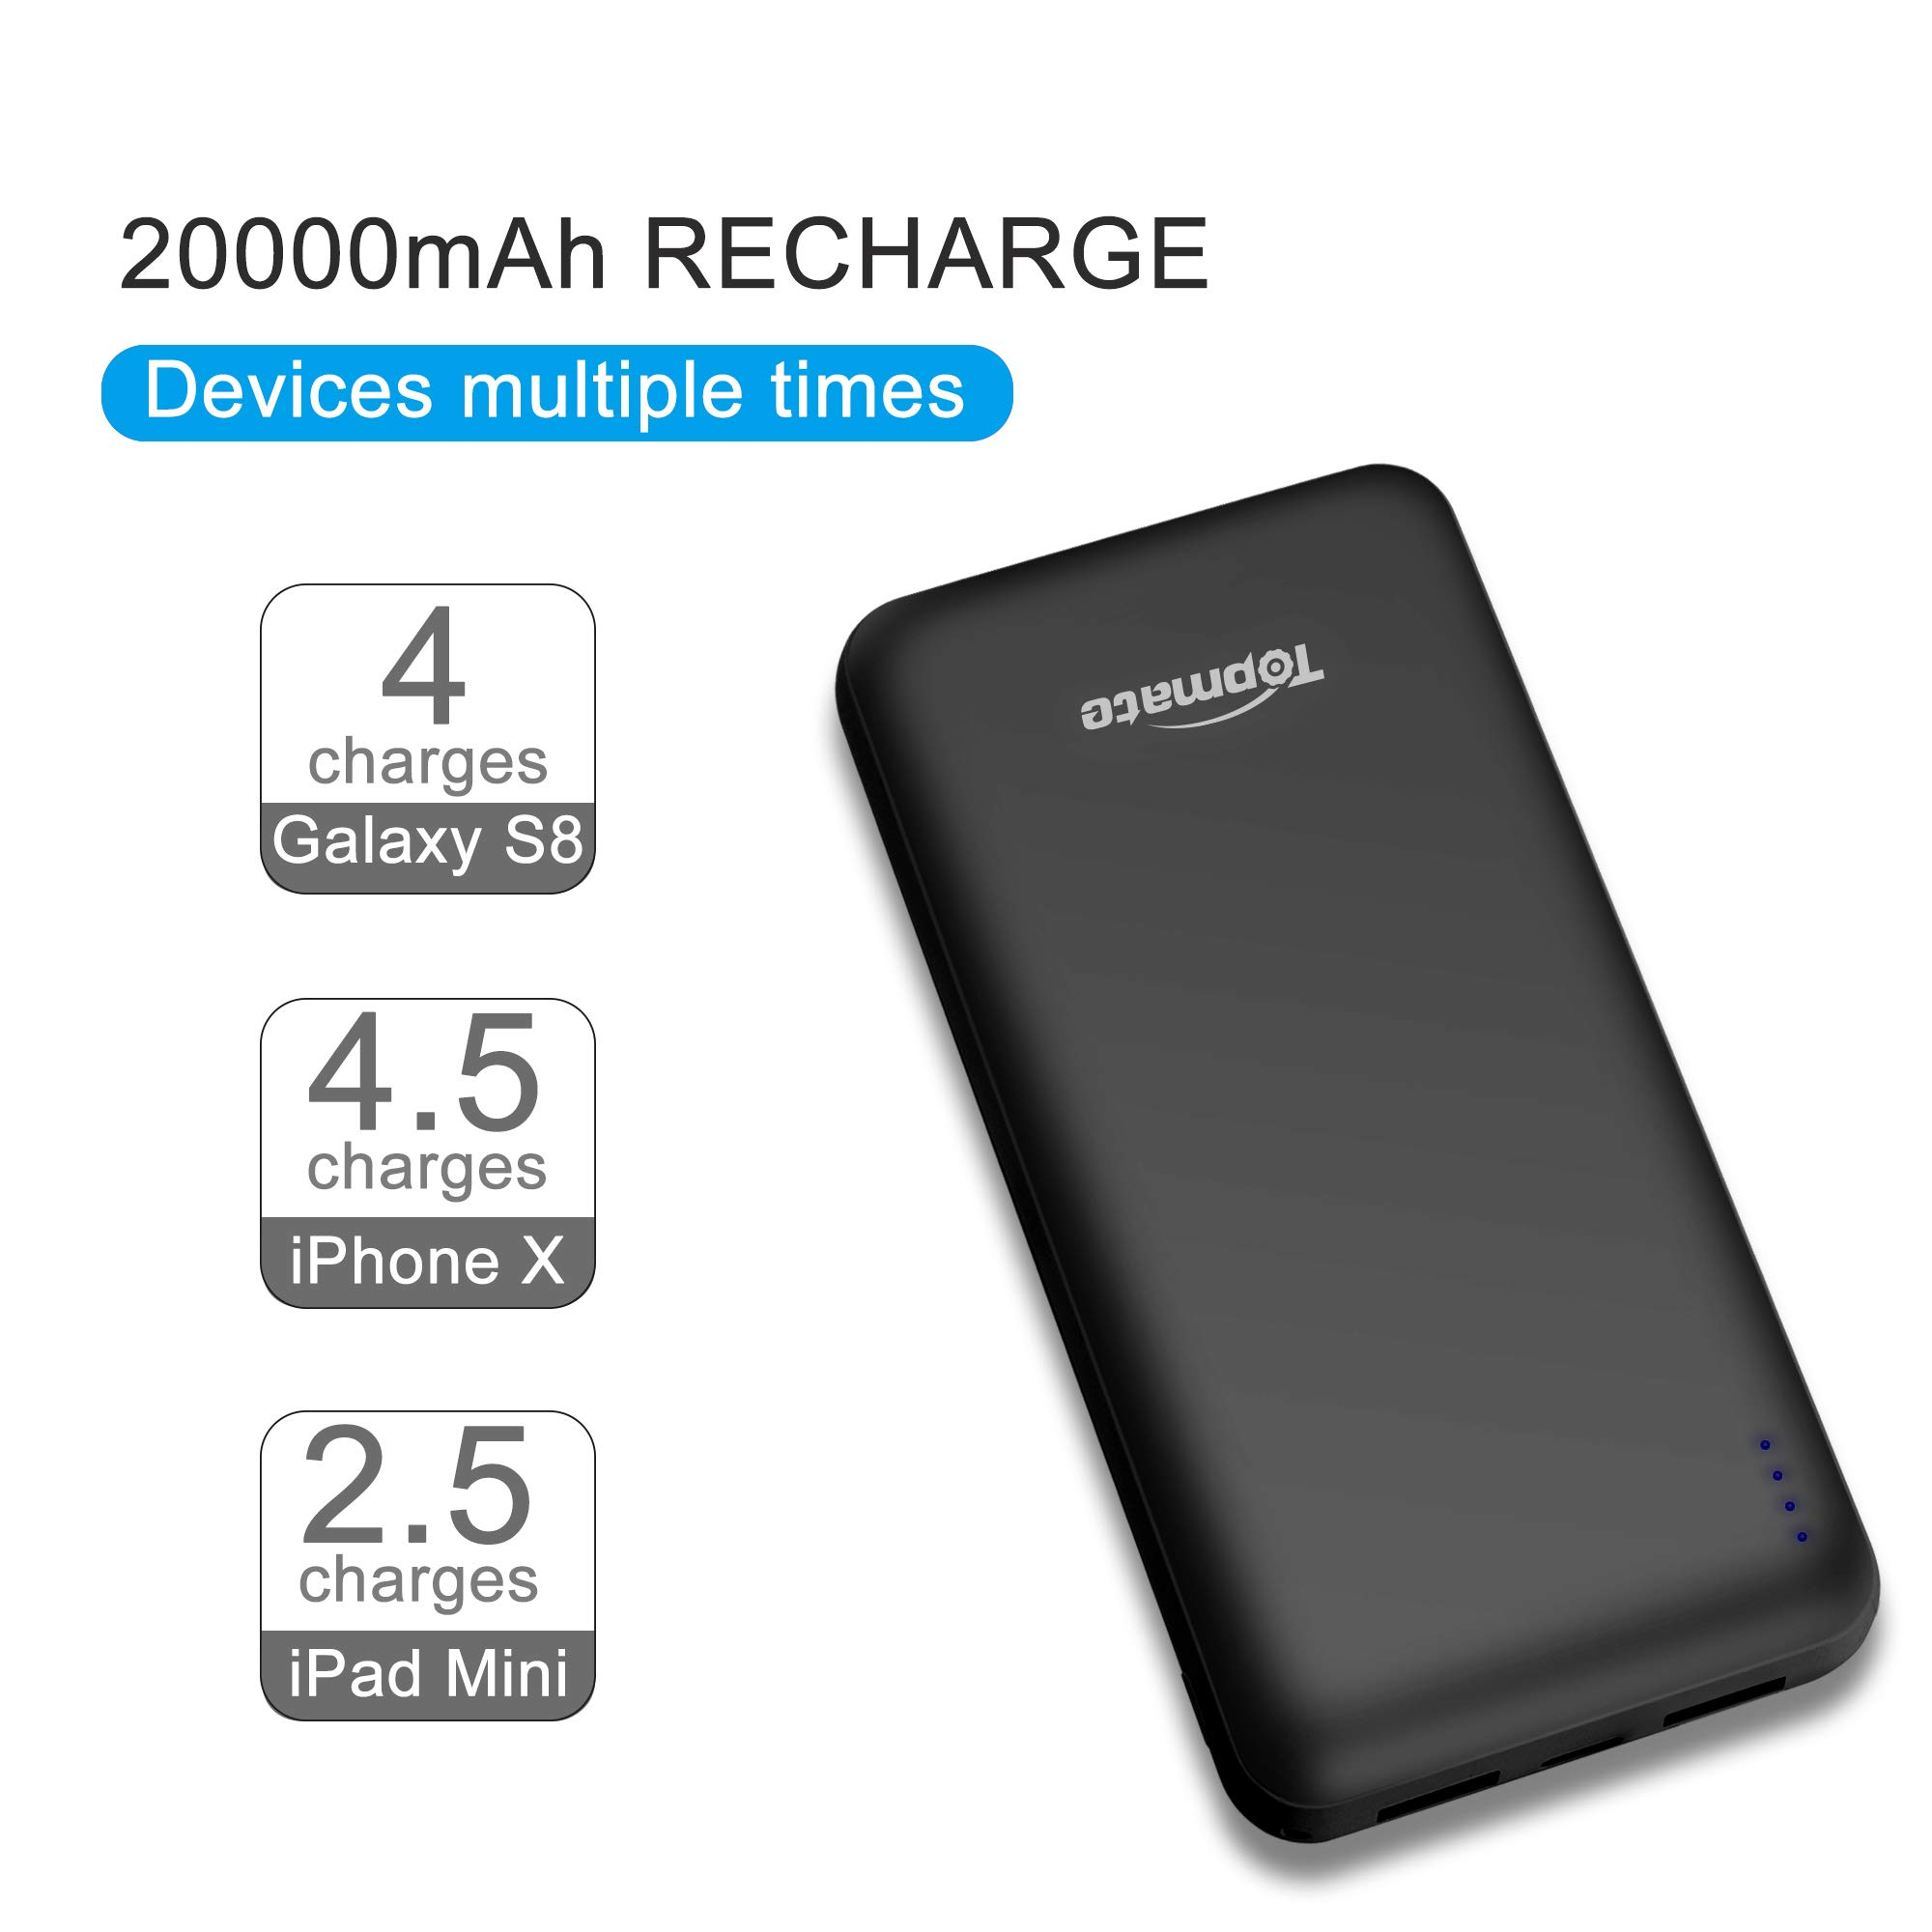 Topmate Power Bank Quick Charge 20000mAh Portable Charger QC 3.0 & PD 3.0 with Type-C Input &Output | Light Weight Design for Cellphone Pad and Some Laptops|Black